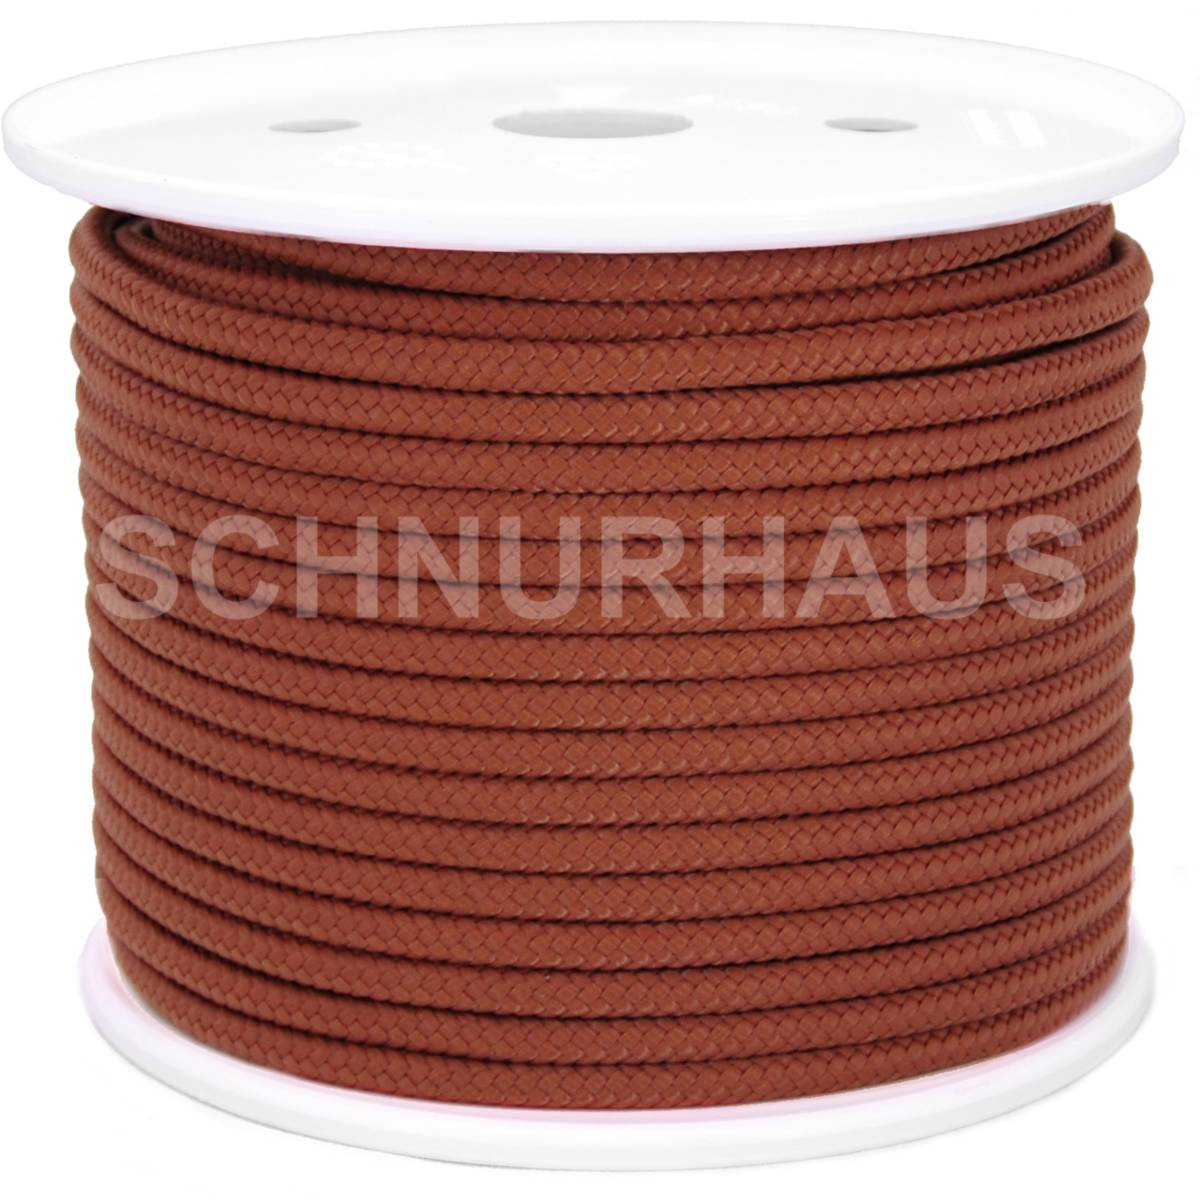 PP hellbraun 7419 ( light brown ) Seil Schnur